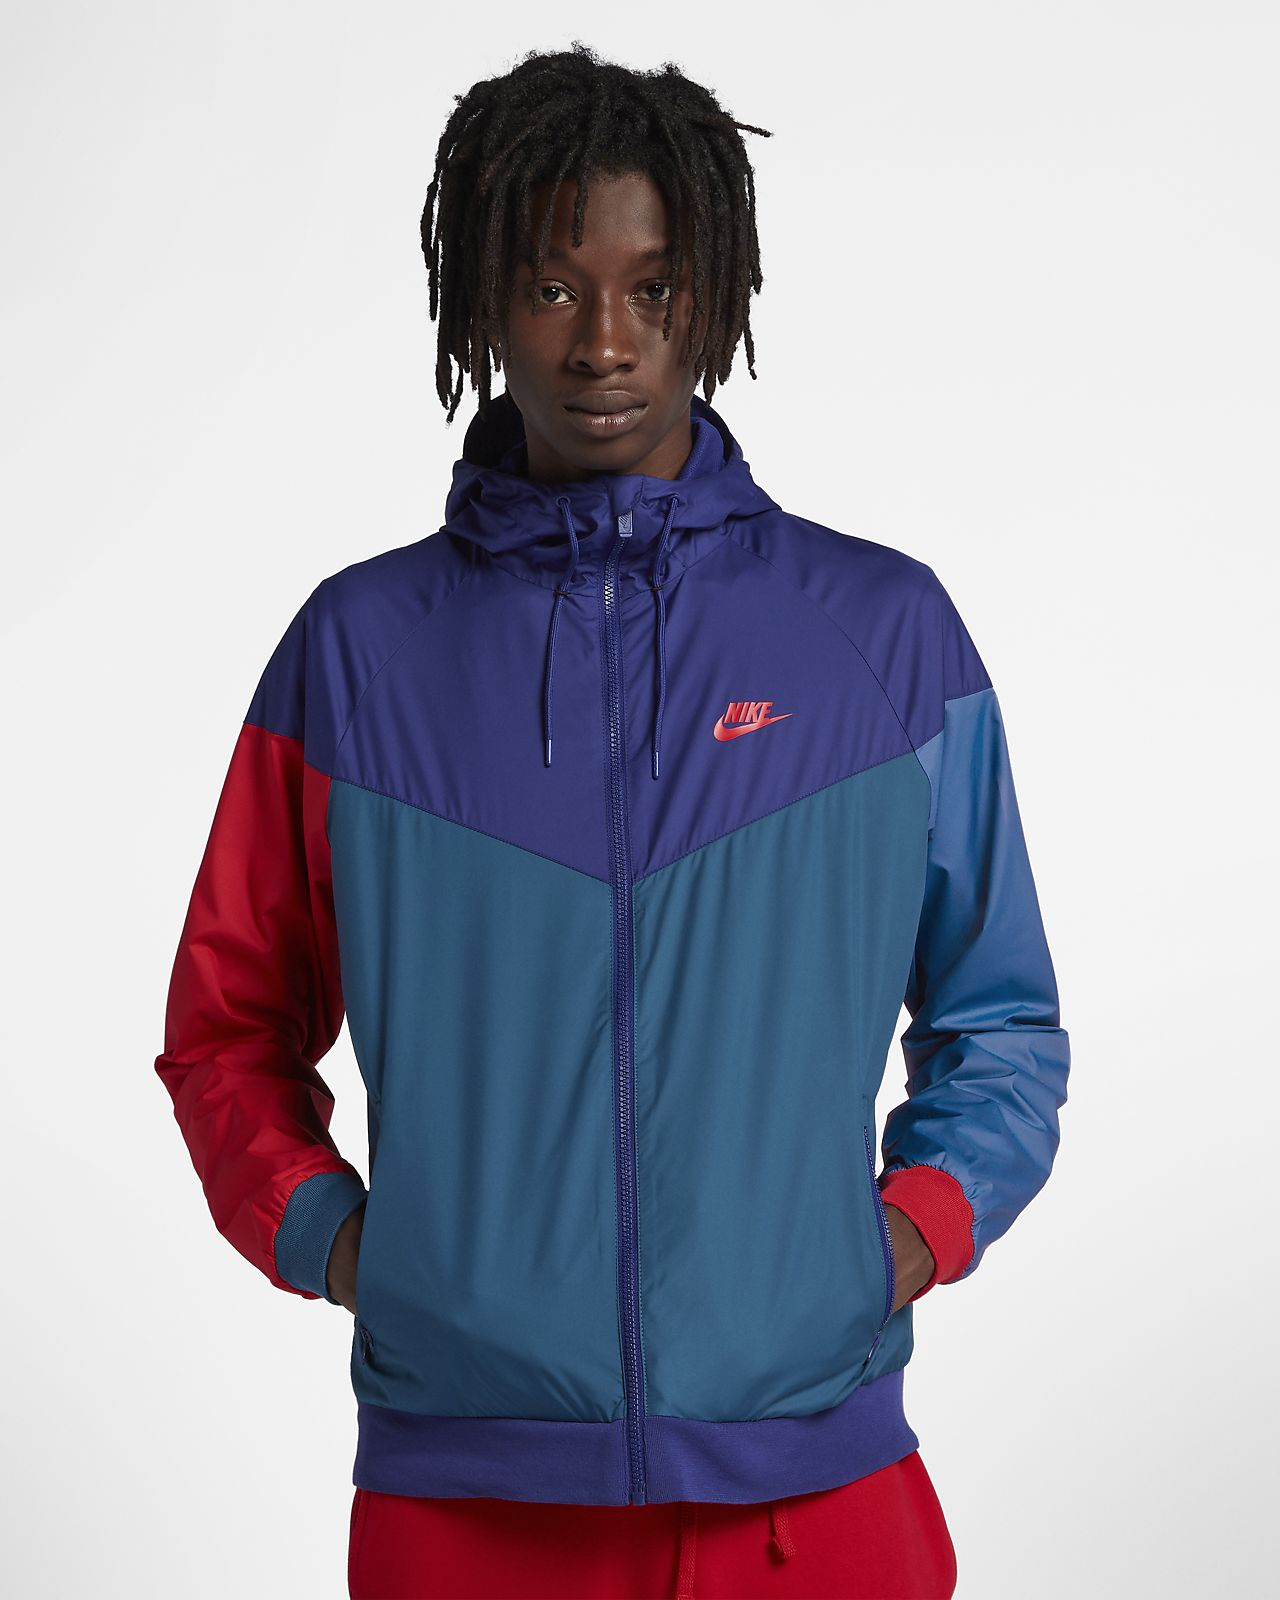 Low Resolution Nike Sportswear Windrunner Men s Jacket Nike Sportswear  Windrunner Men s Jacket 647e5eecc